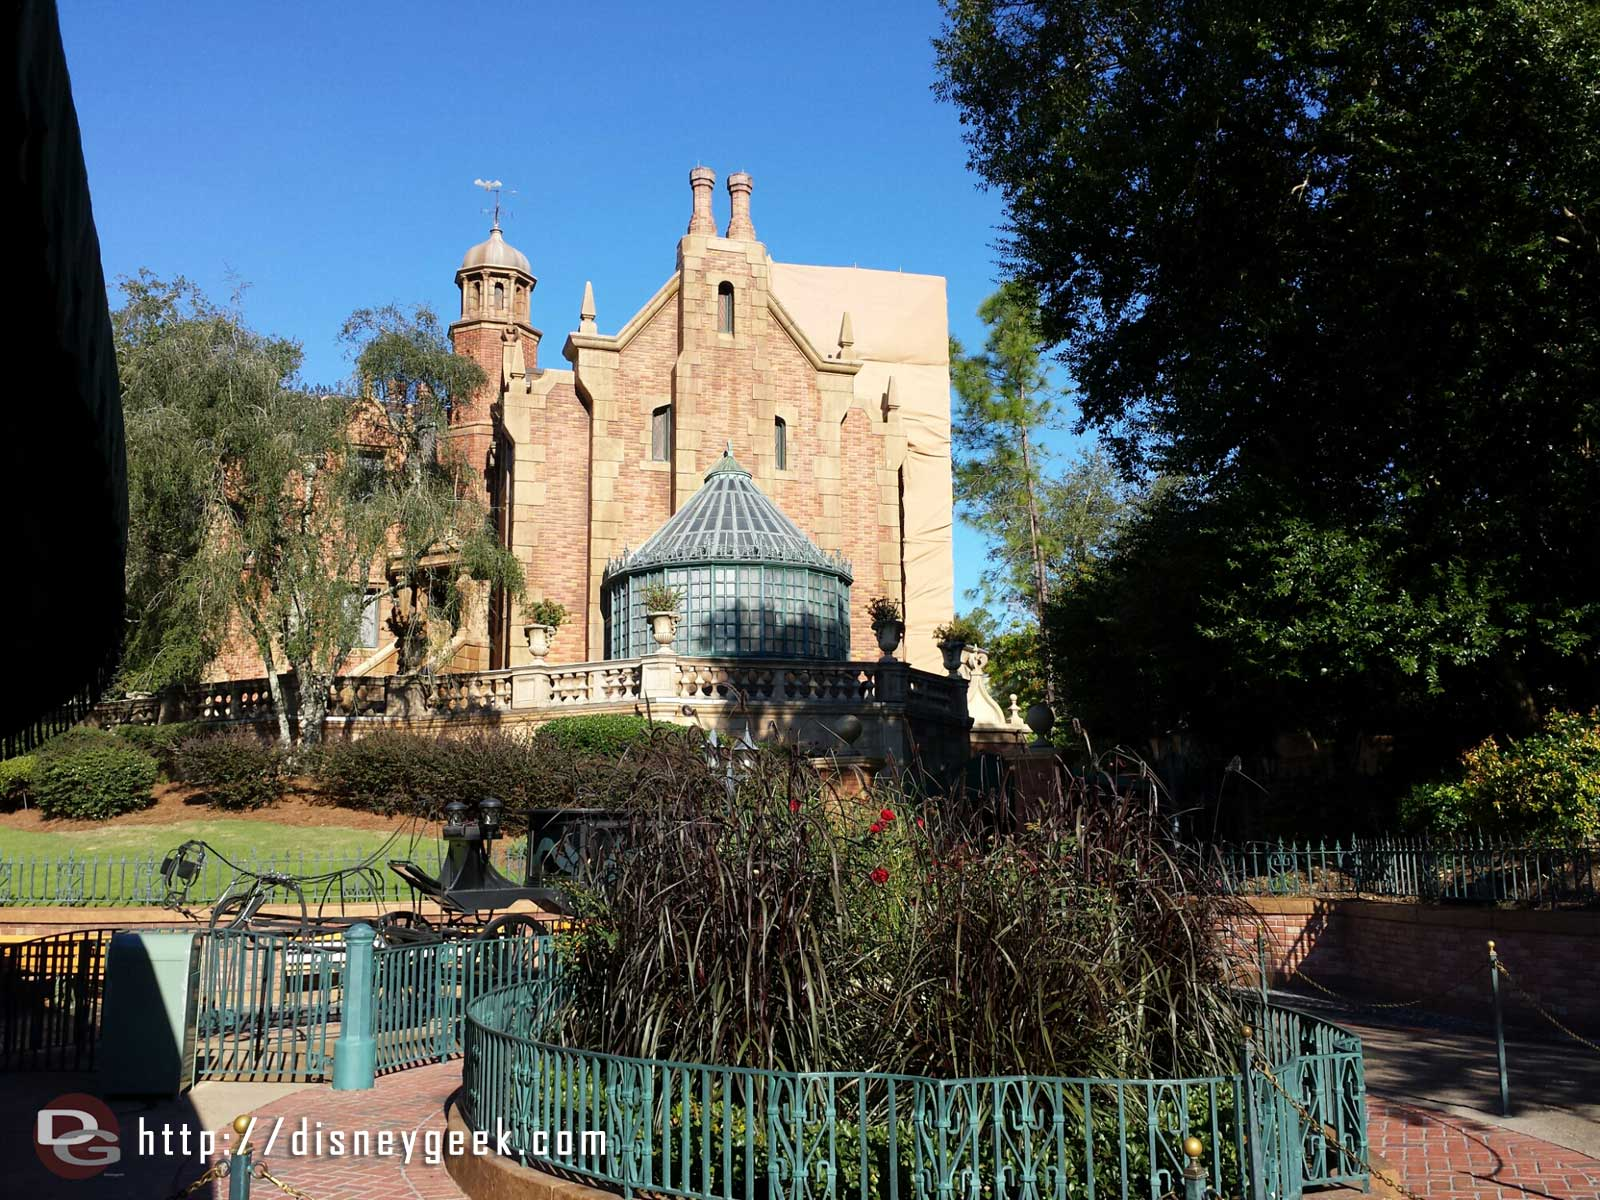 The Haunted Mansion has reopened early from its renovation #WDW